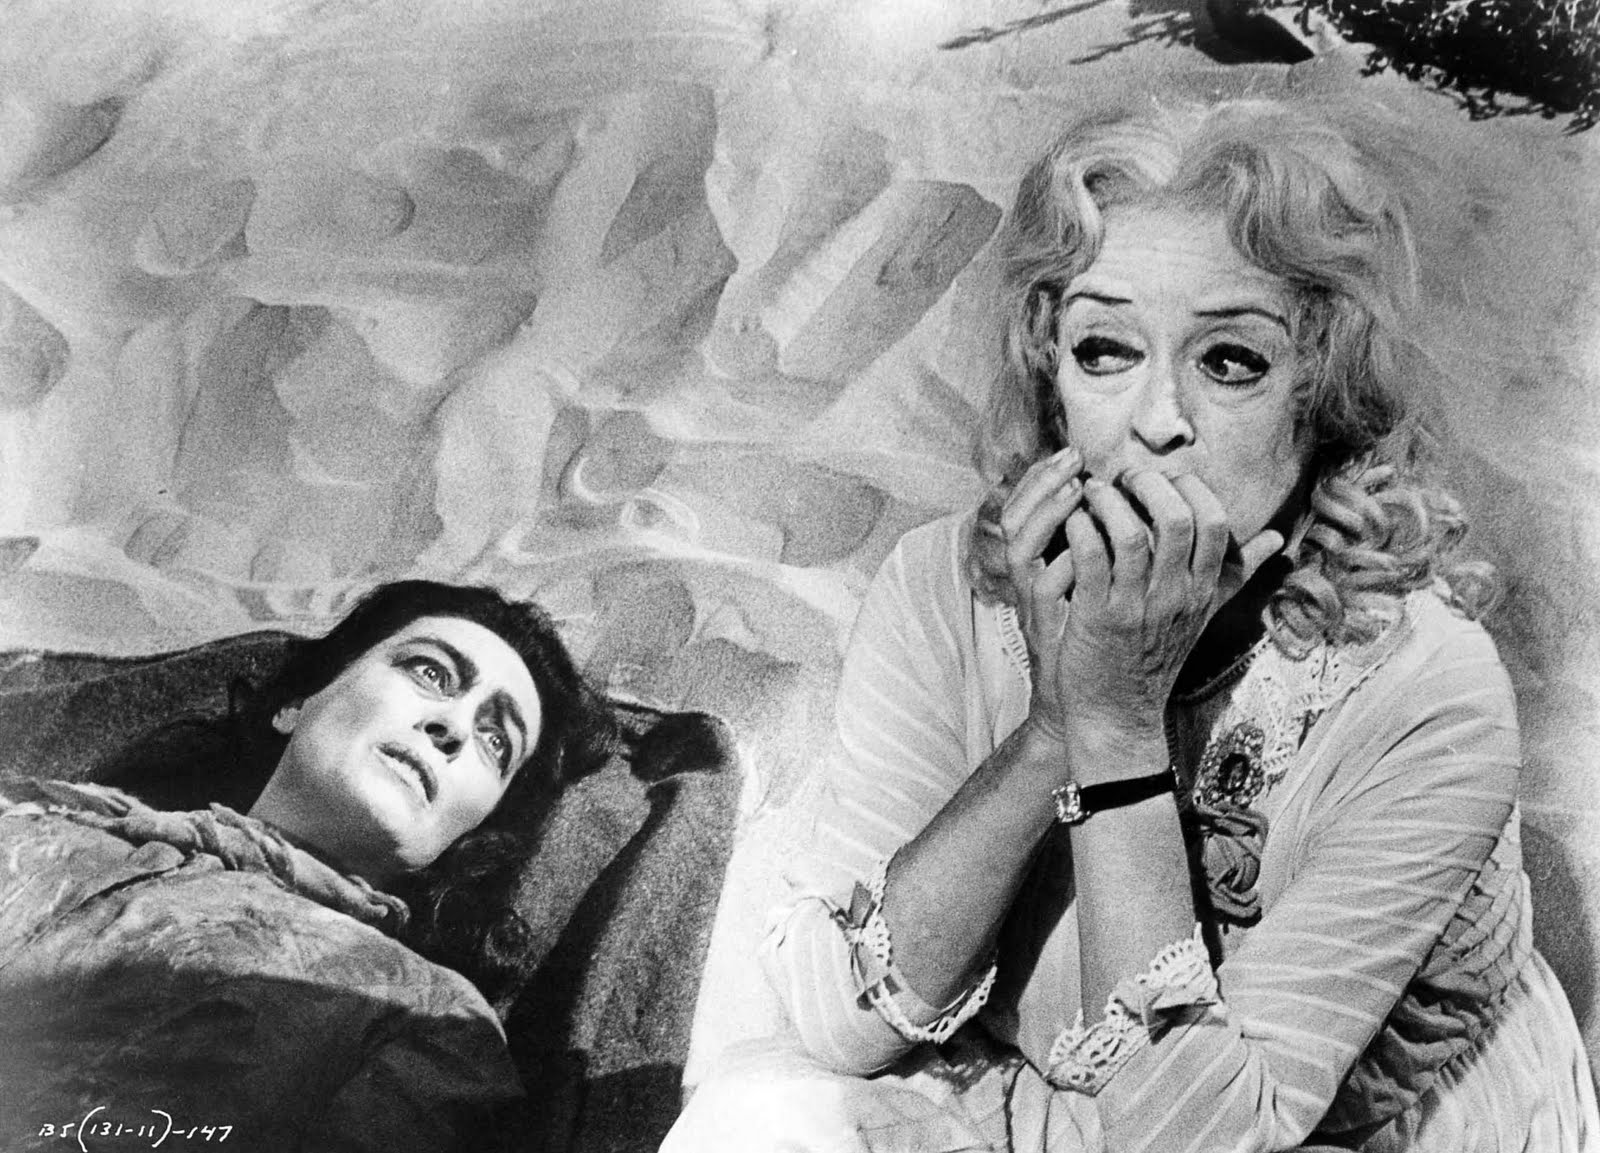 what_ever_happened_to_baby_jane_131_11_147.jpg